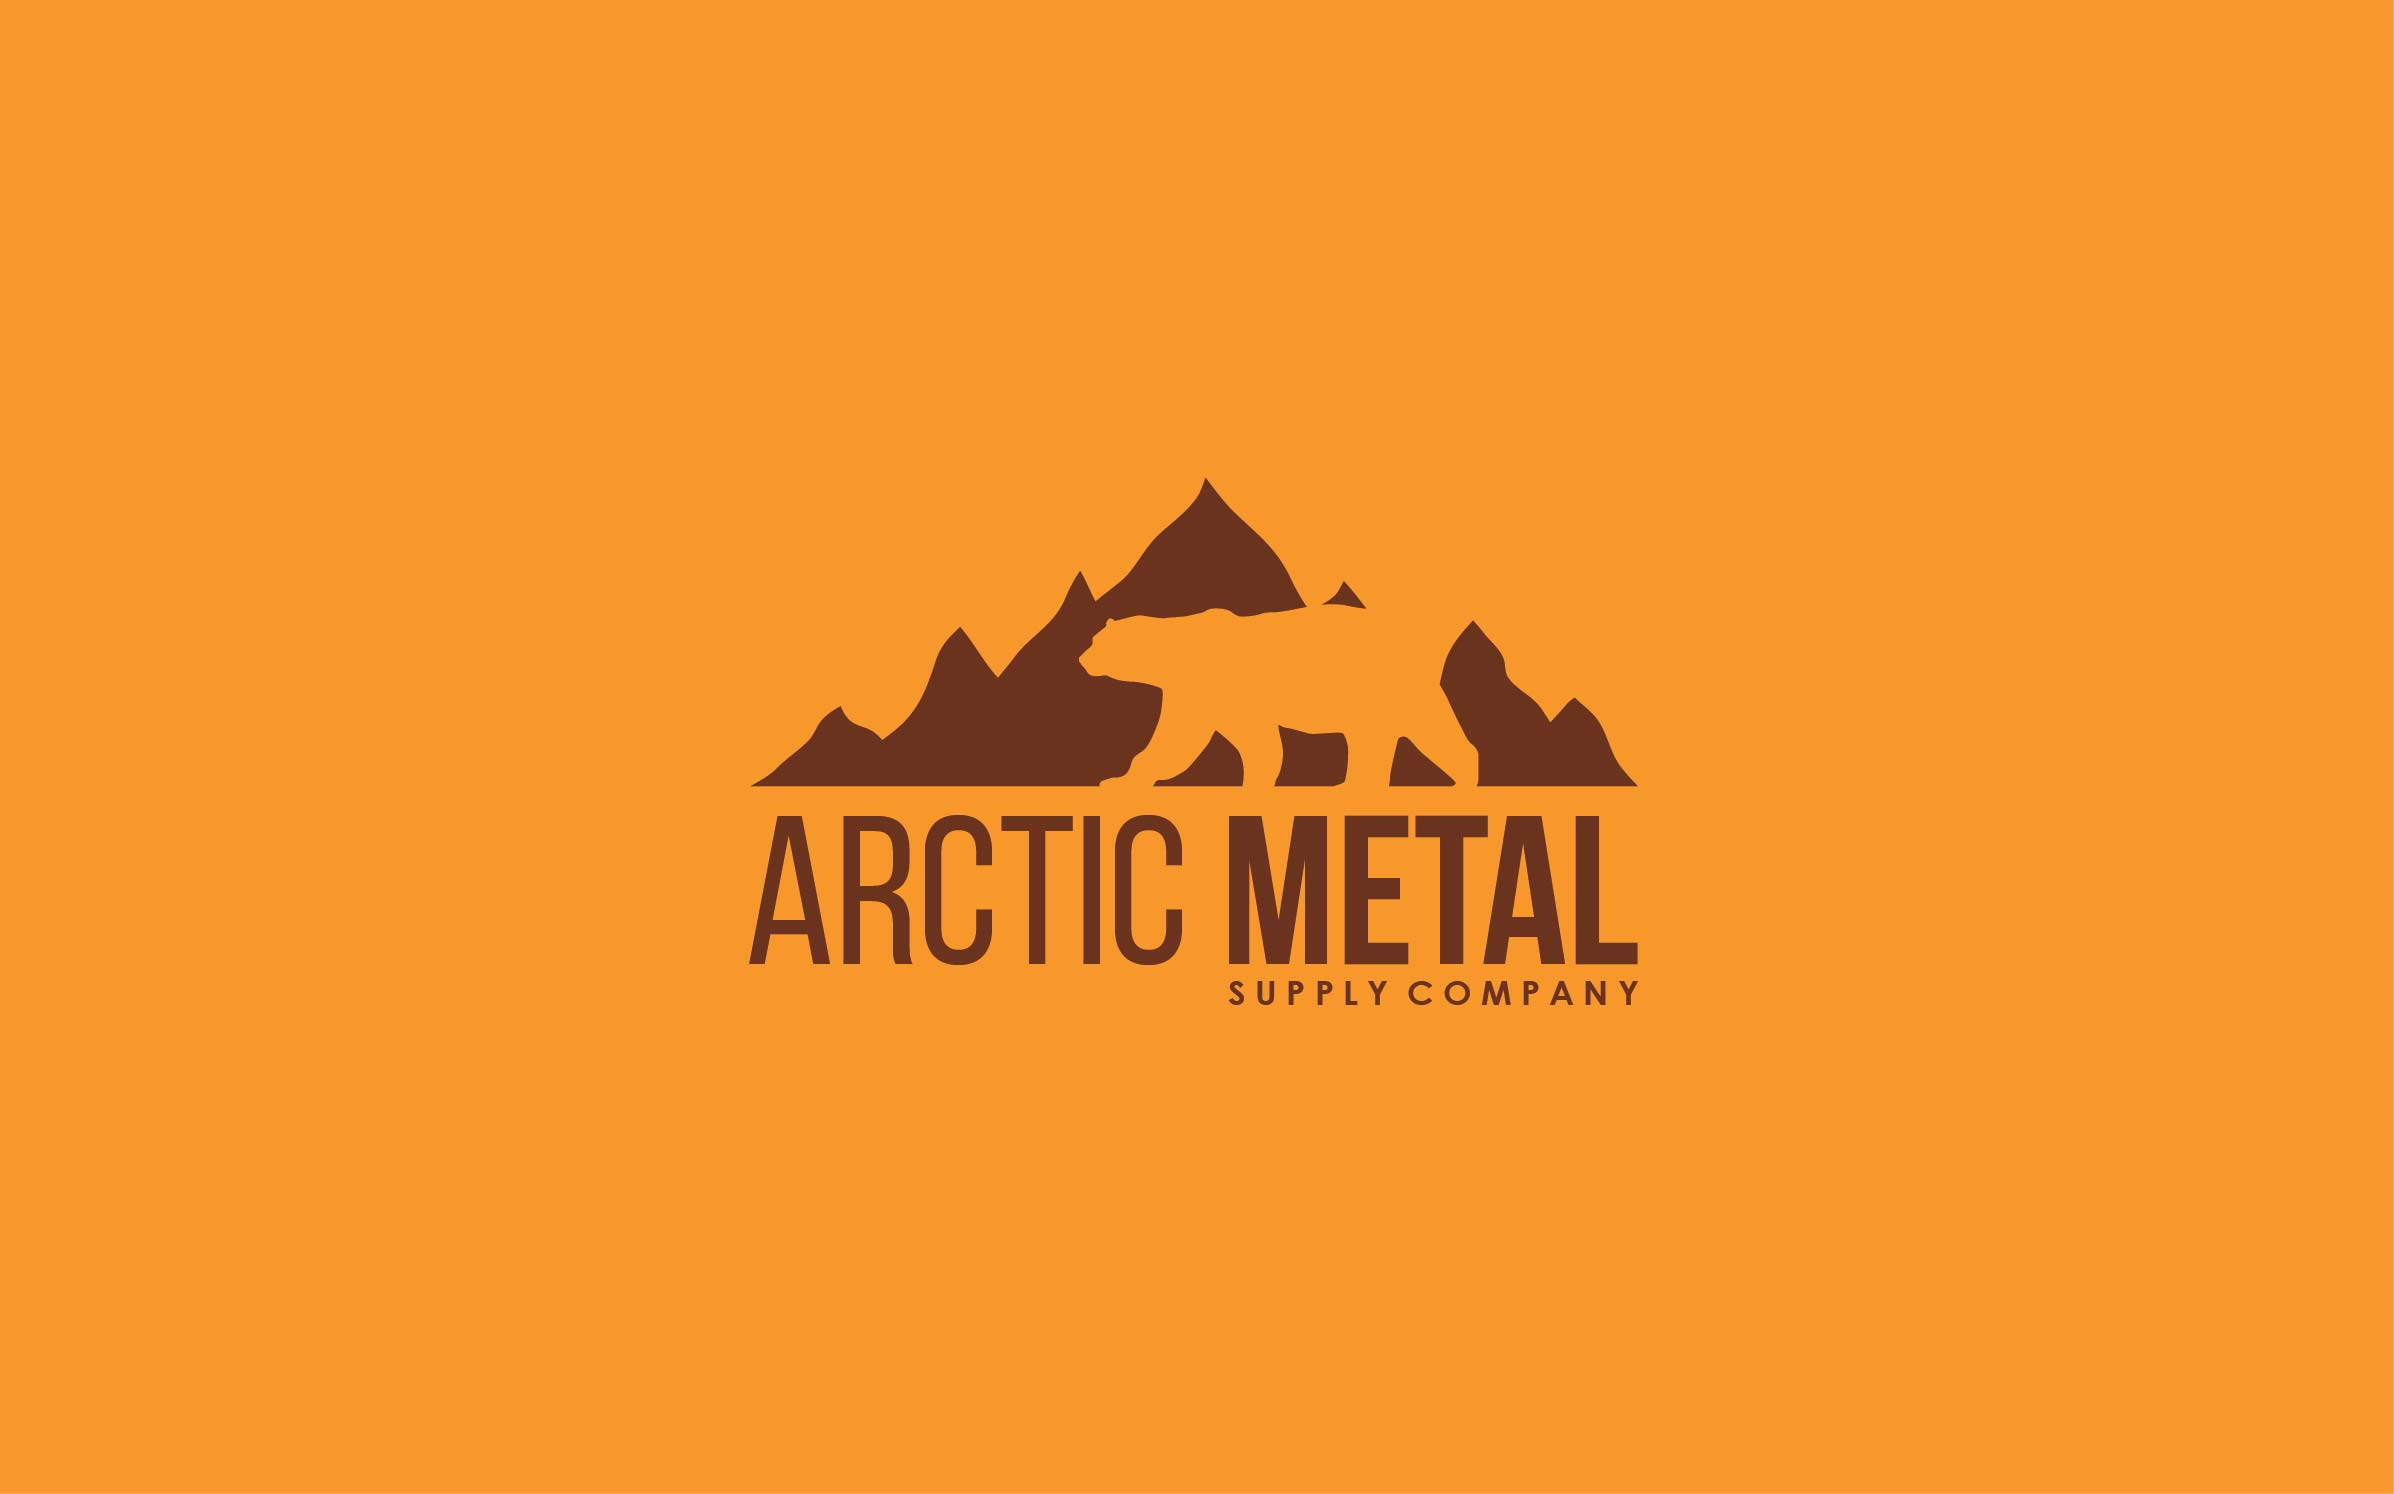 Jourjious Design - Artic Metal logo.